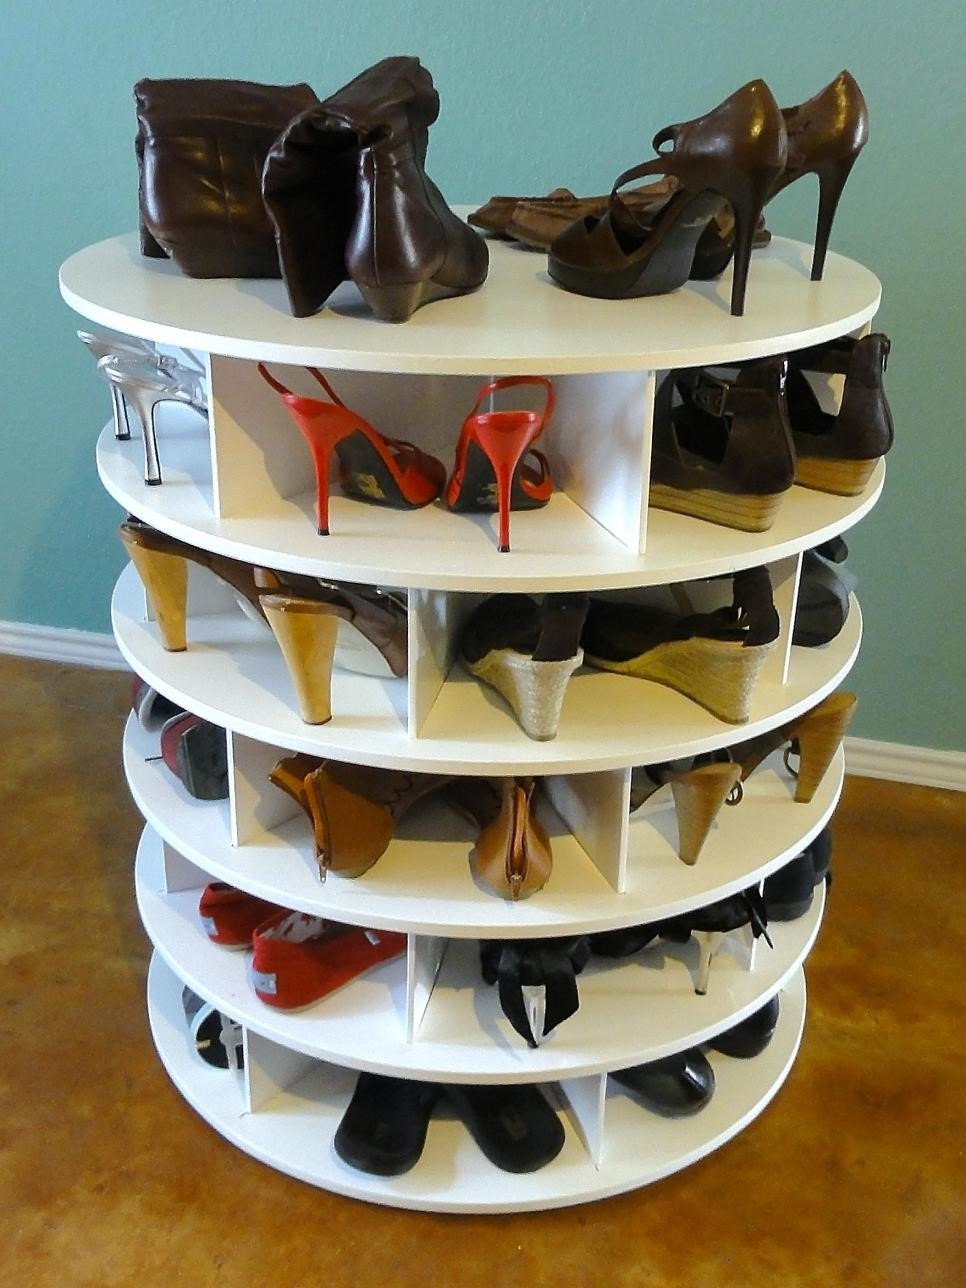 3 Rotating Shoe Rack Simphome com